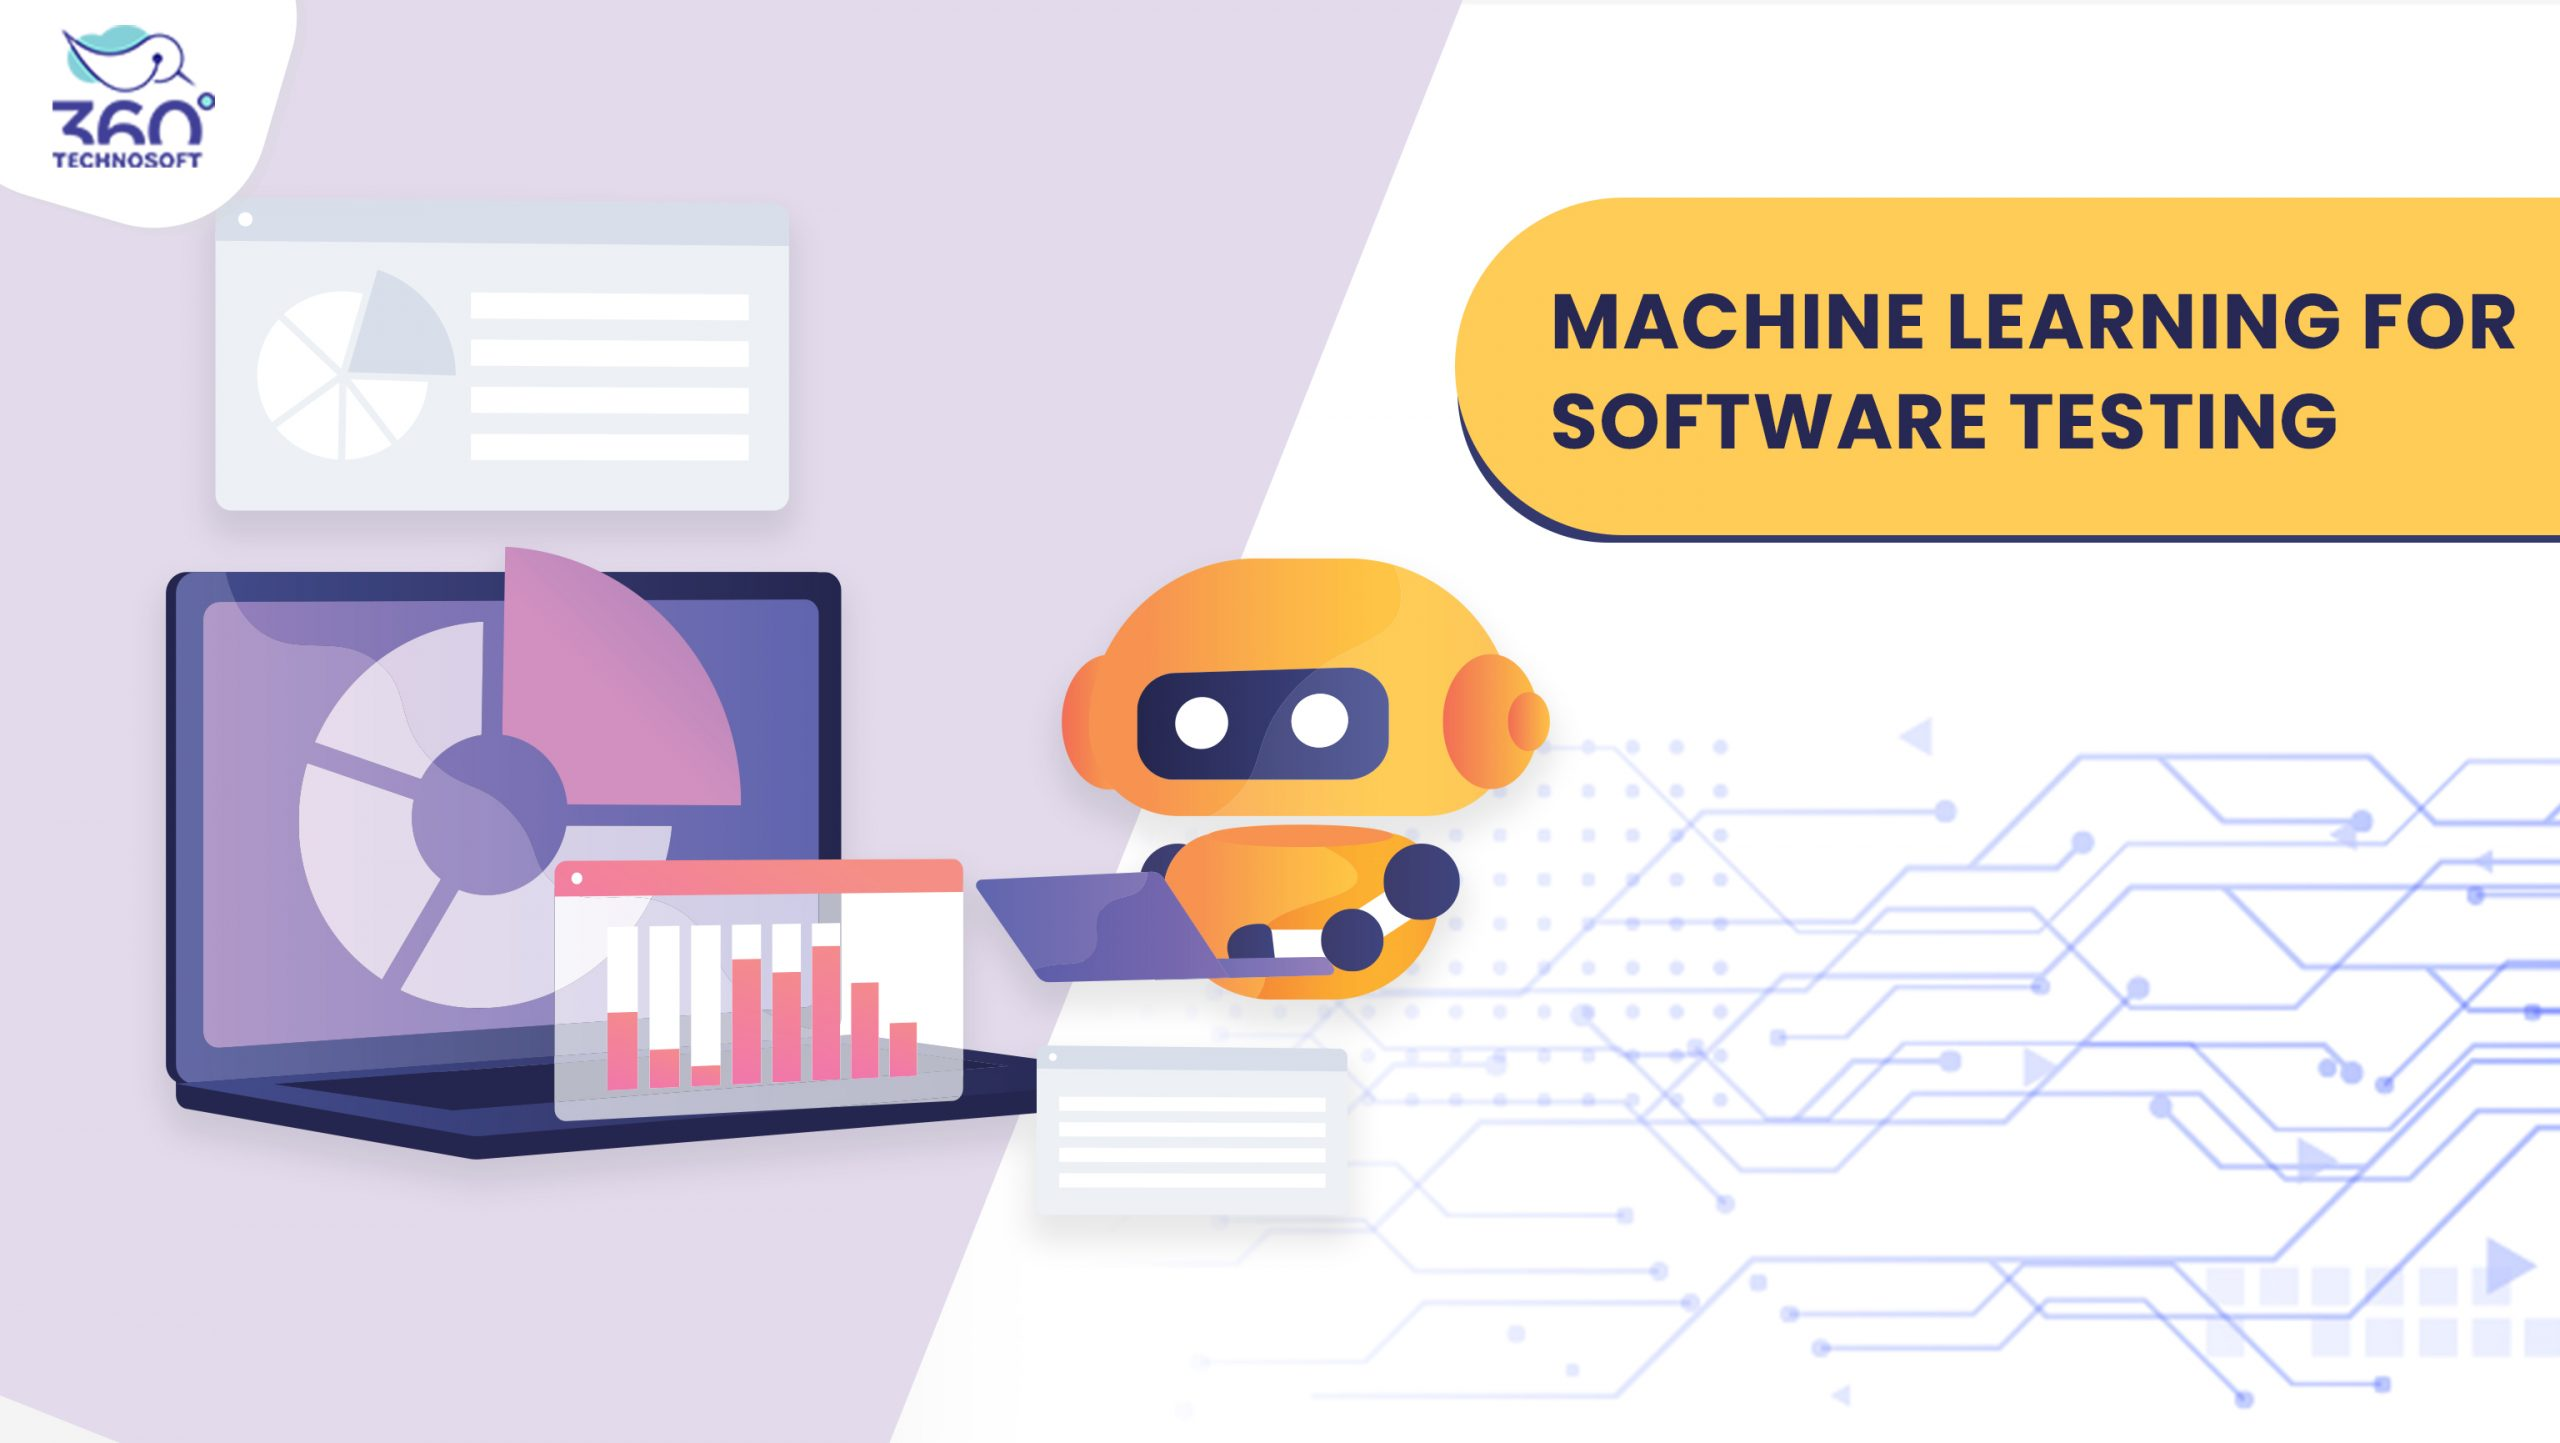 MHow is Machine Learning Changing the Future of Software Testing?